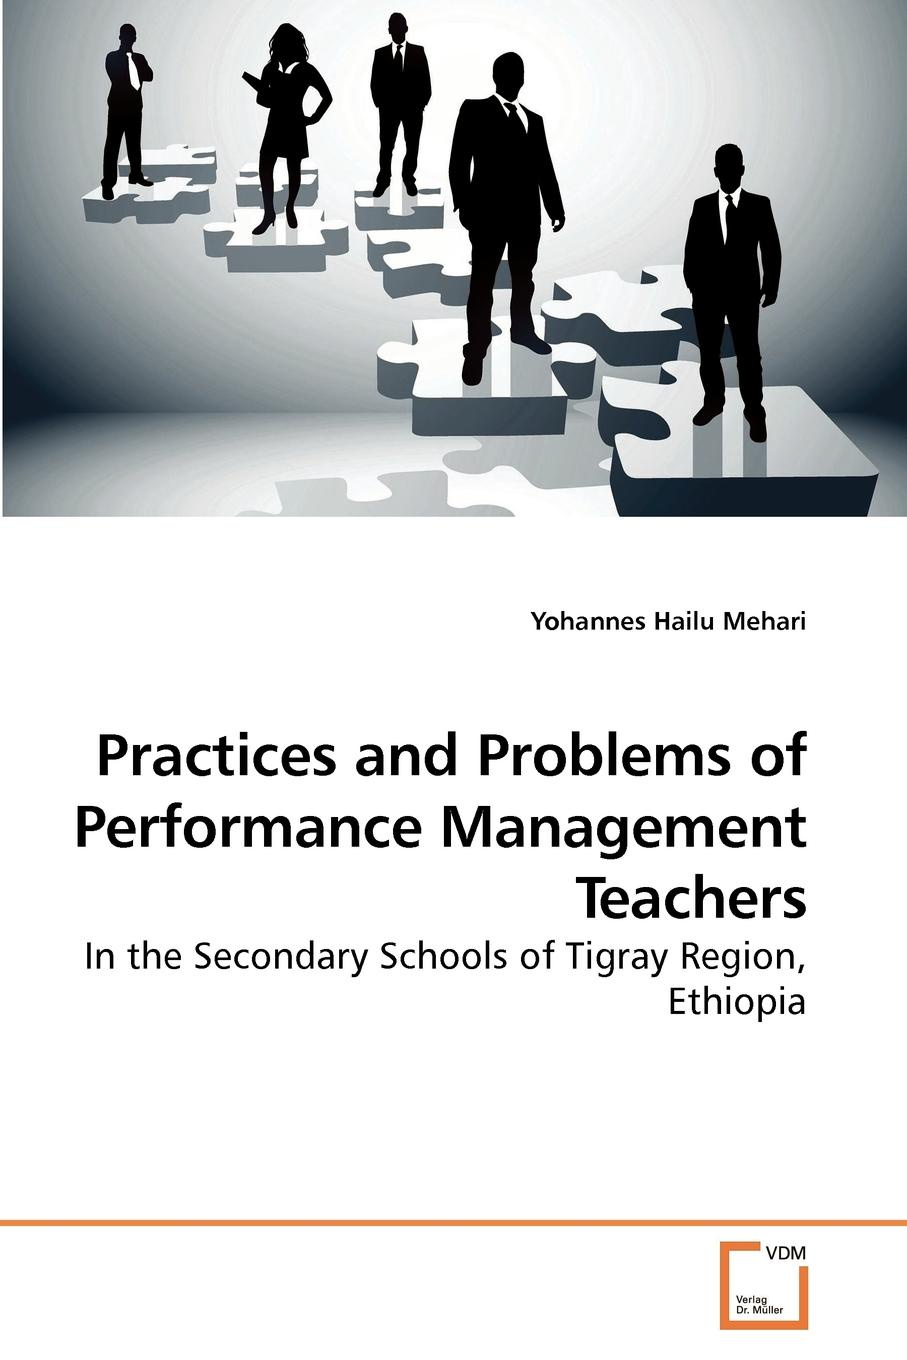 Yohannes Hailu Mehari Practices and Problems of Performance Management Teachers girma shimelis muluneh teachers performance appraisal system